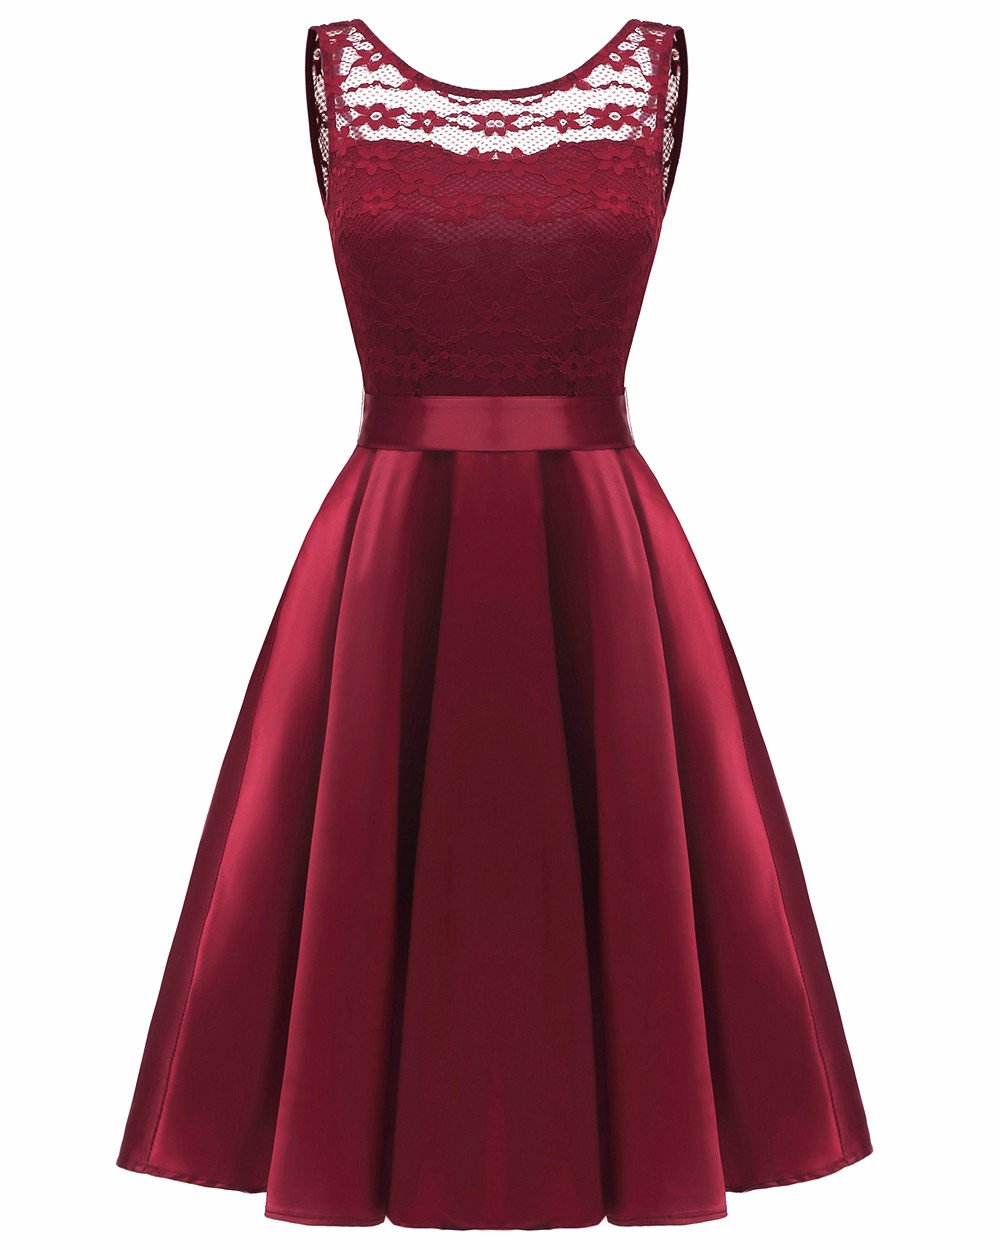 Lace Dress for Women Party - A Line Knee Length Elegant Evening Dress for Wedding (2018), Wine, Large